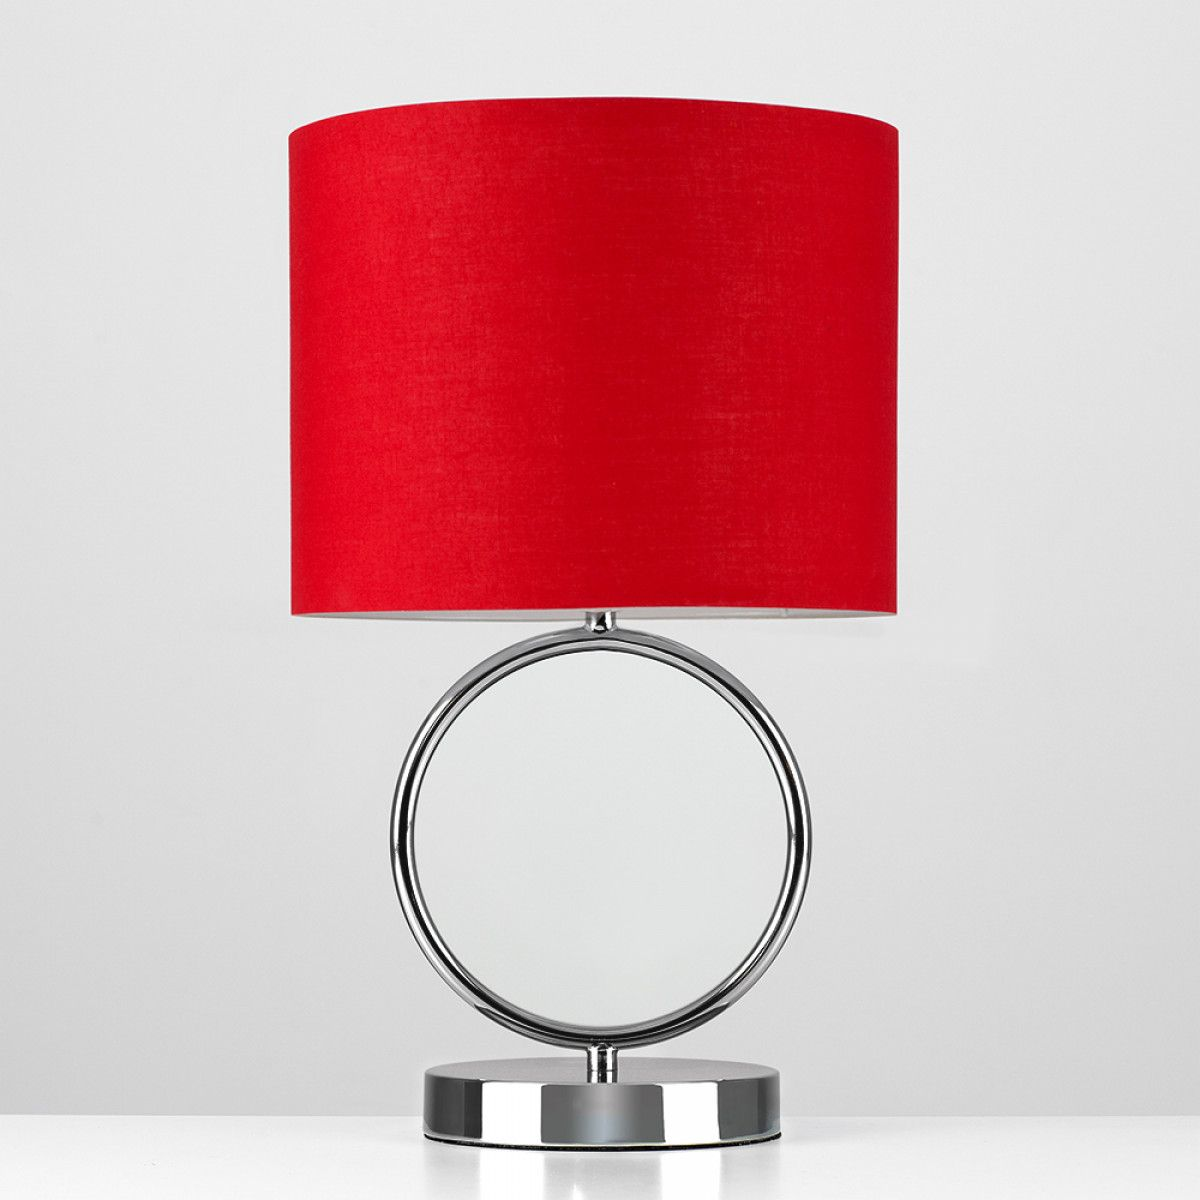 Lavoisier hoop touch table lamp in black chrome red shade iconic lavoisier hoop touch table lamp in black chrome red shade aloadofball Gallery